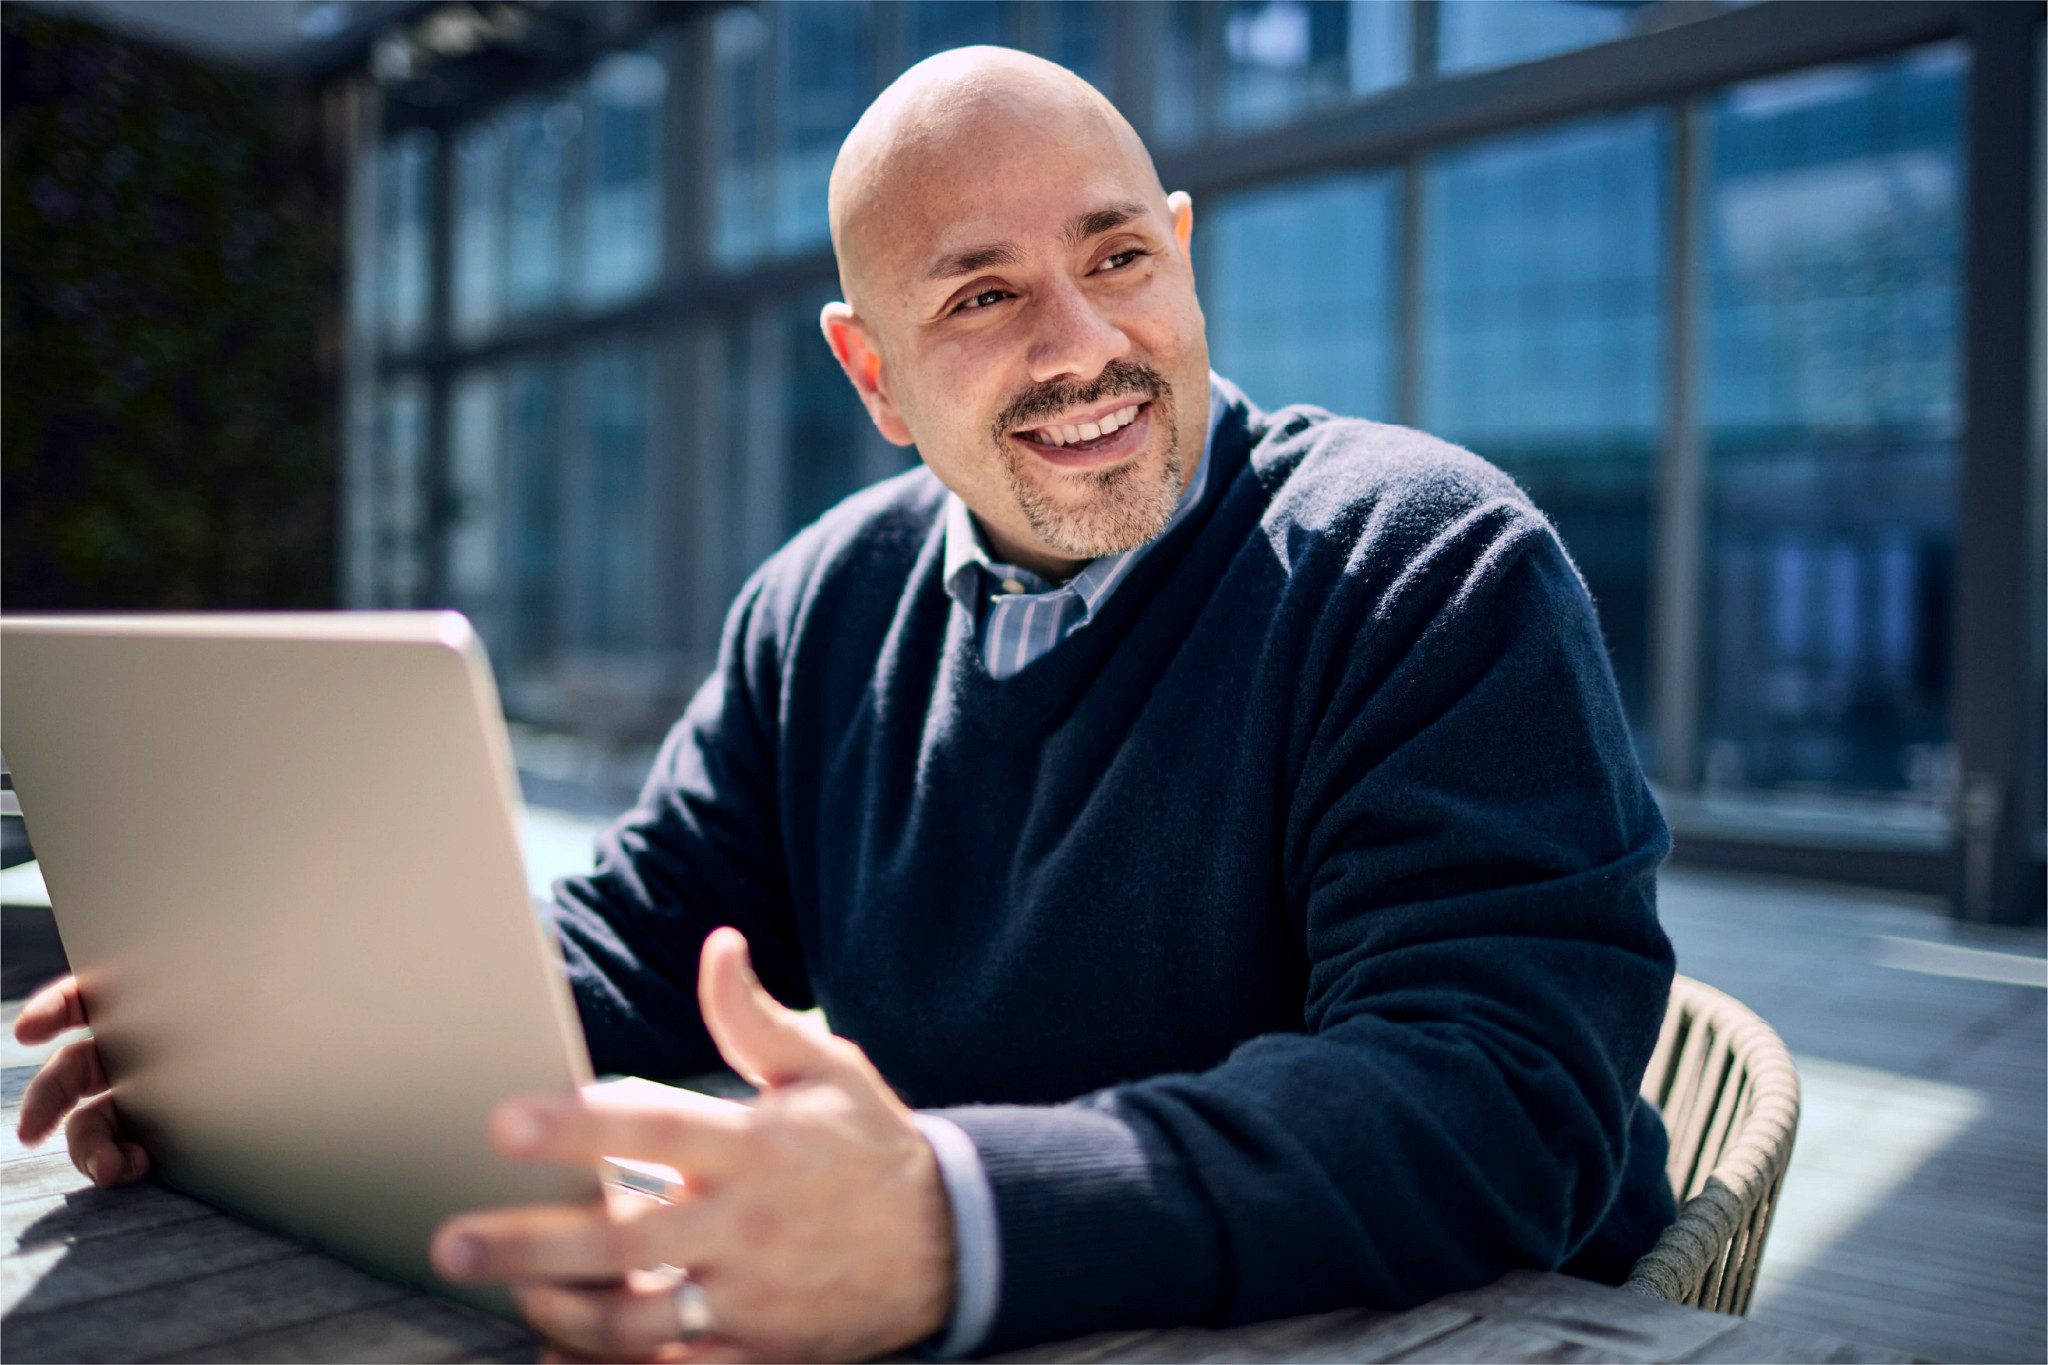 Edwin R., Senior Vice President, Sales, discusses how Cengage is a mission driven organization.